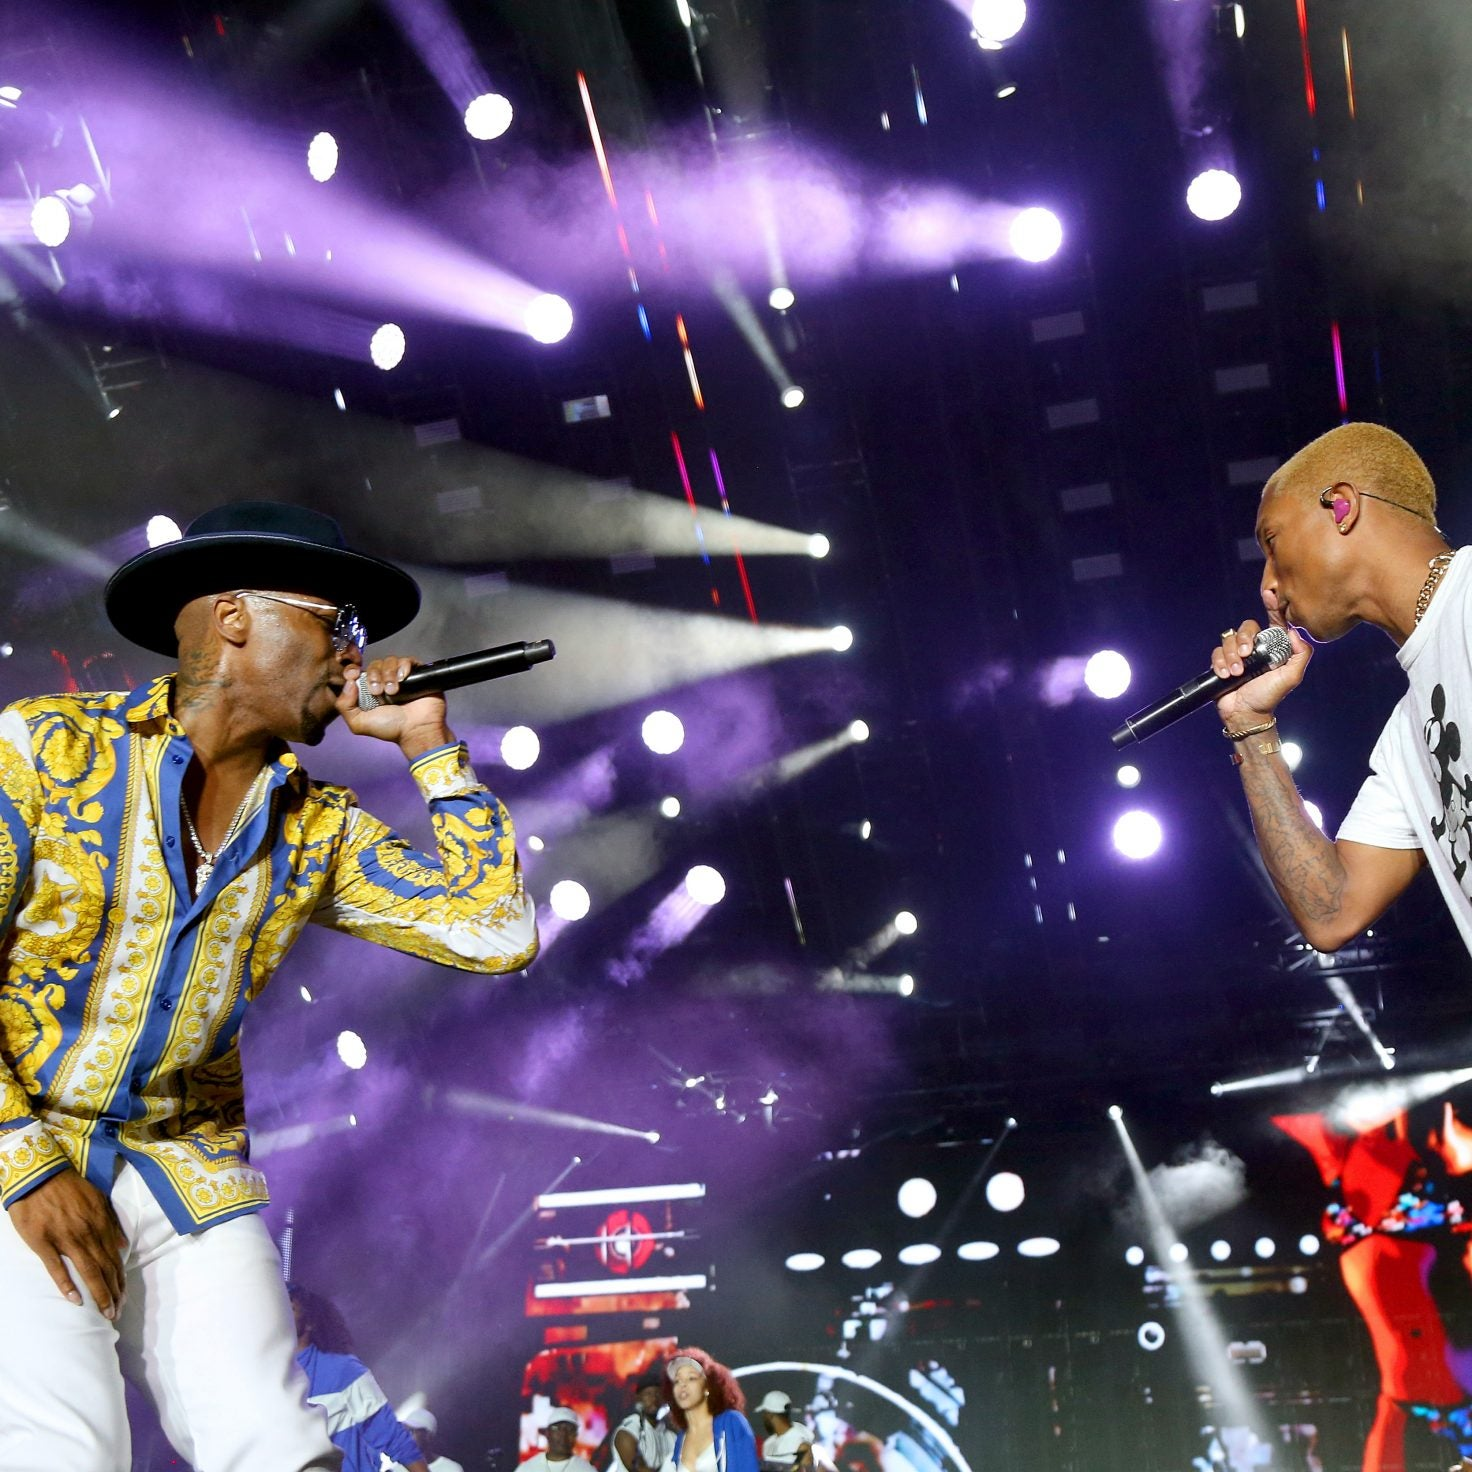 ESSENCE Fest Flashback: The 23 Most Unforgettable Moments From The Year's Biggest Celebration Of Black Culture